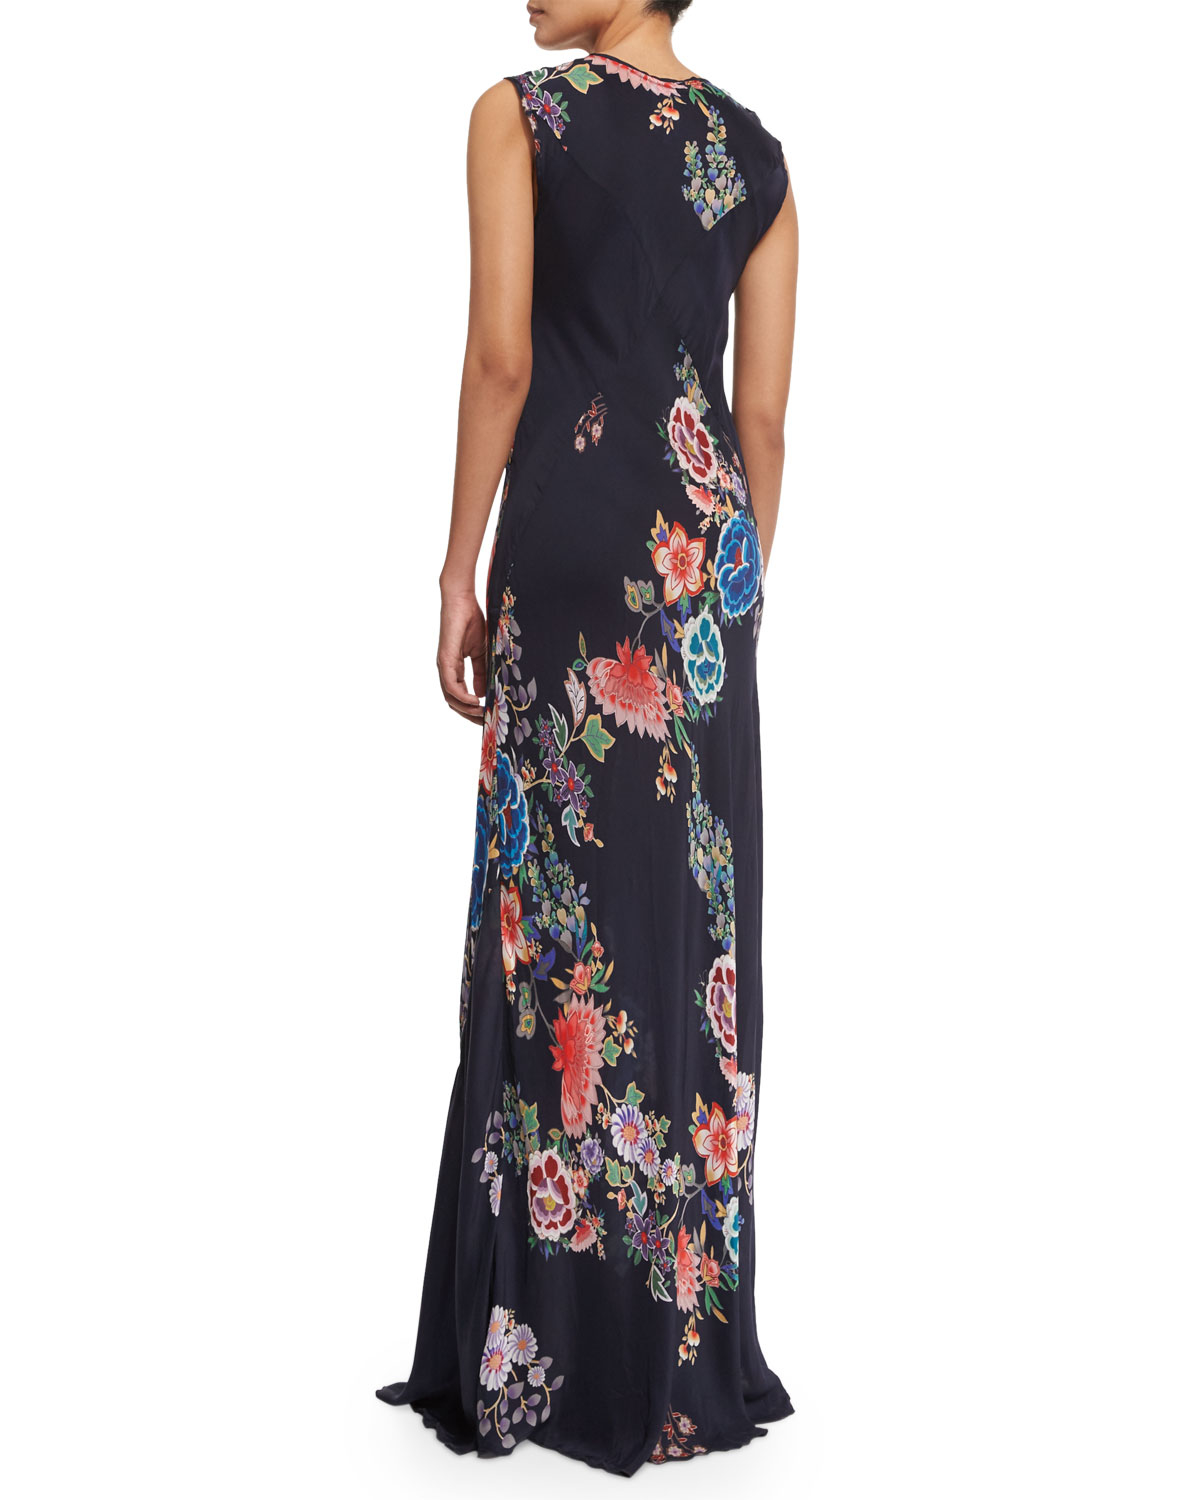 Lyst - Johnny Was Augustine Sleeveless Floral-print Maxi Dress